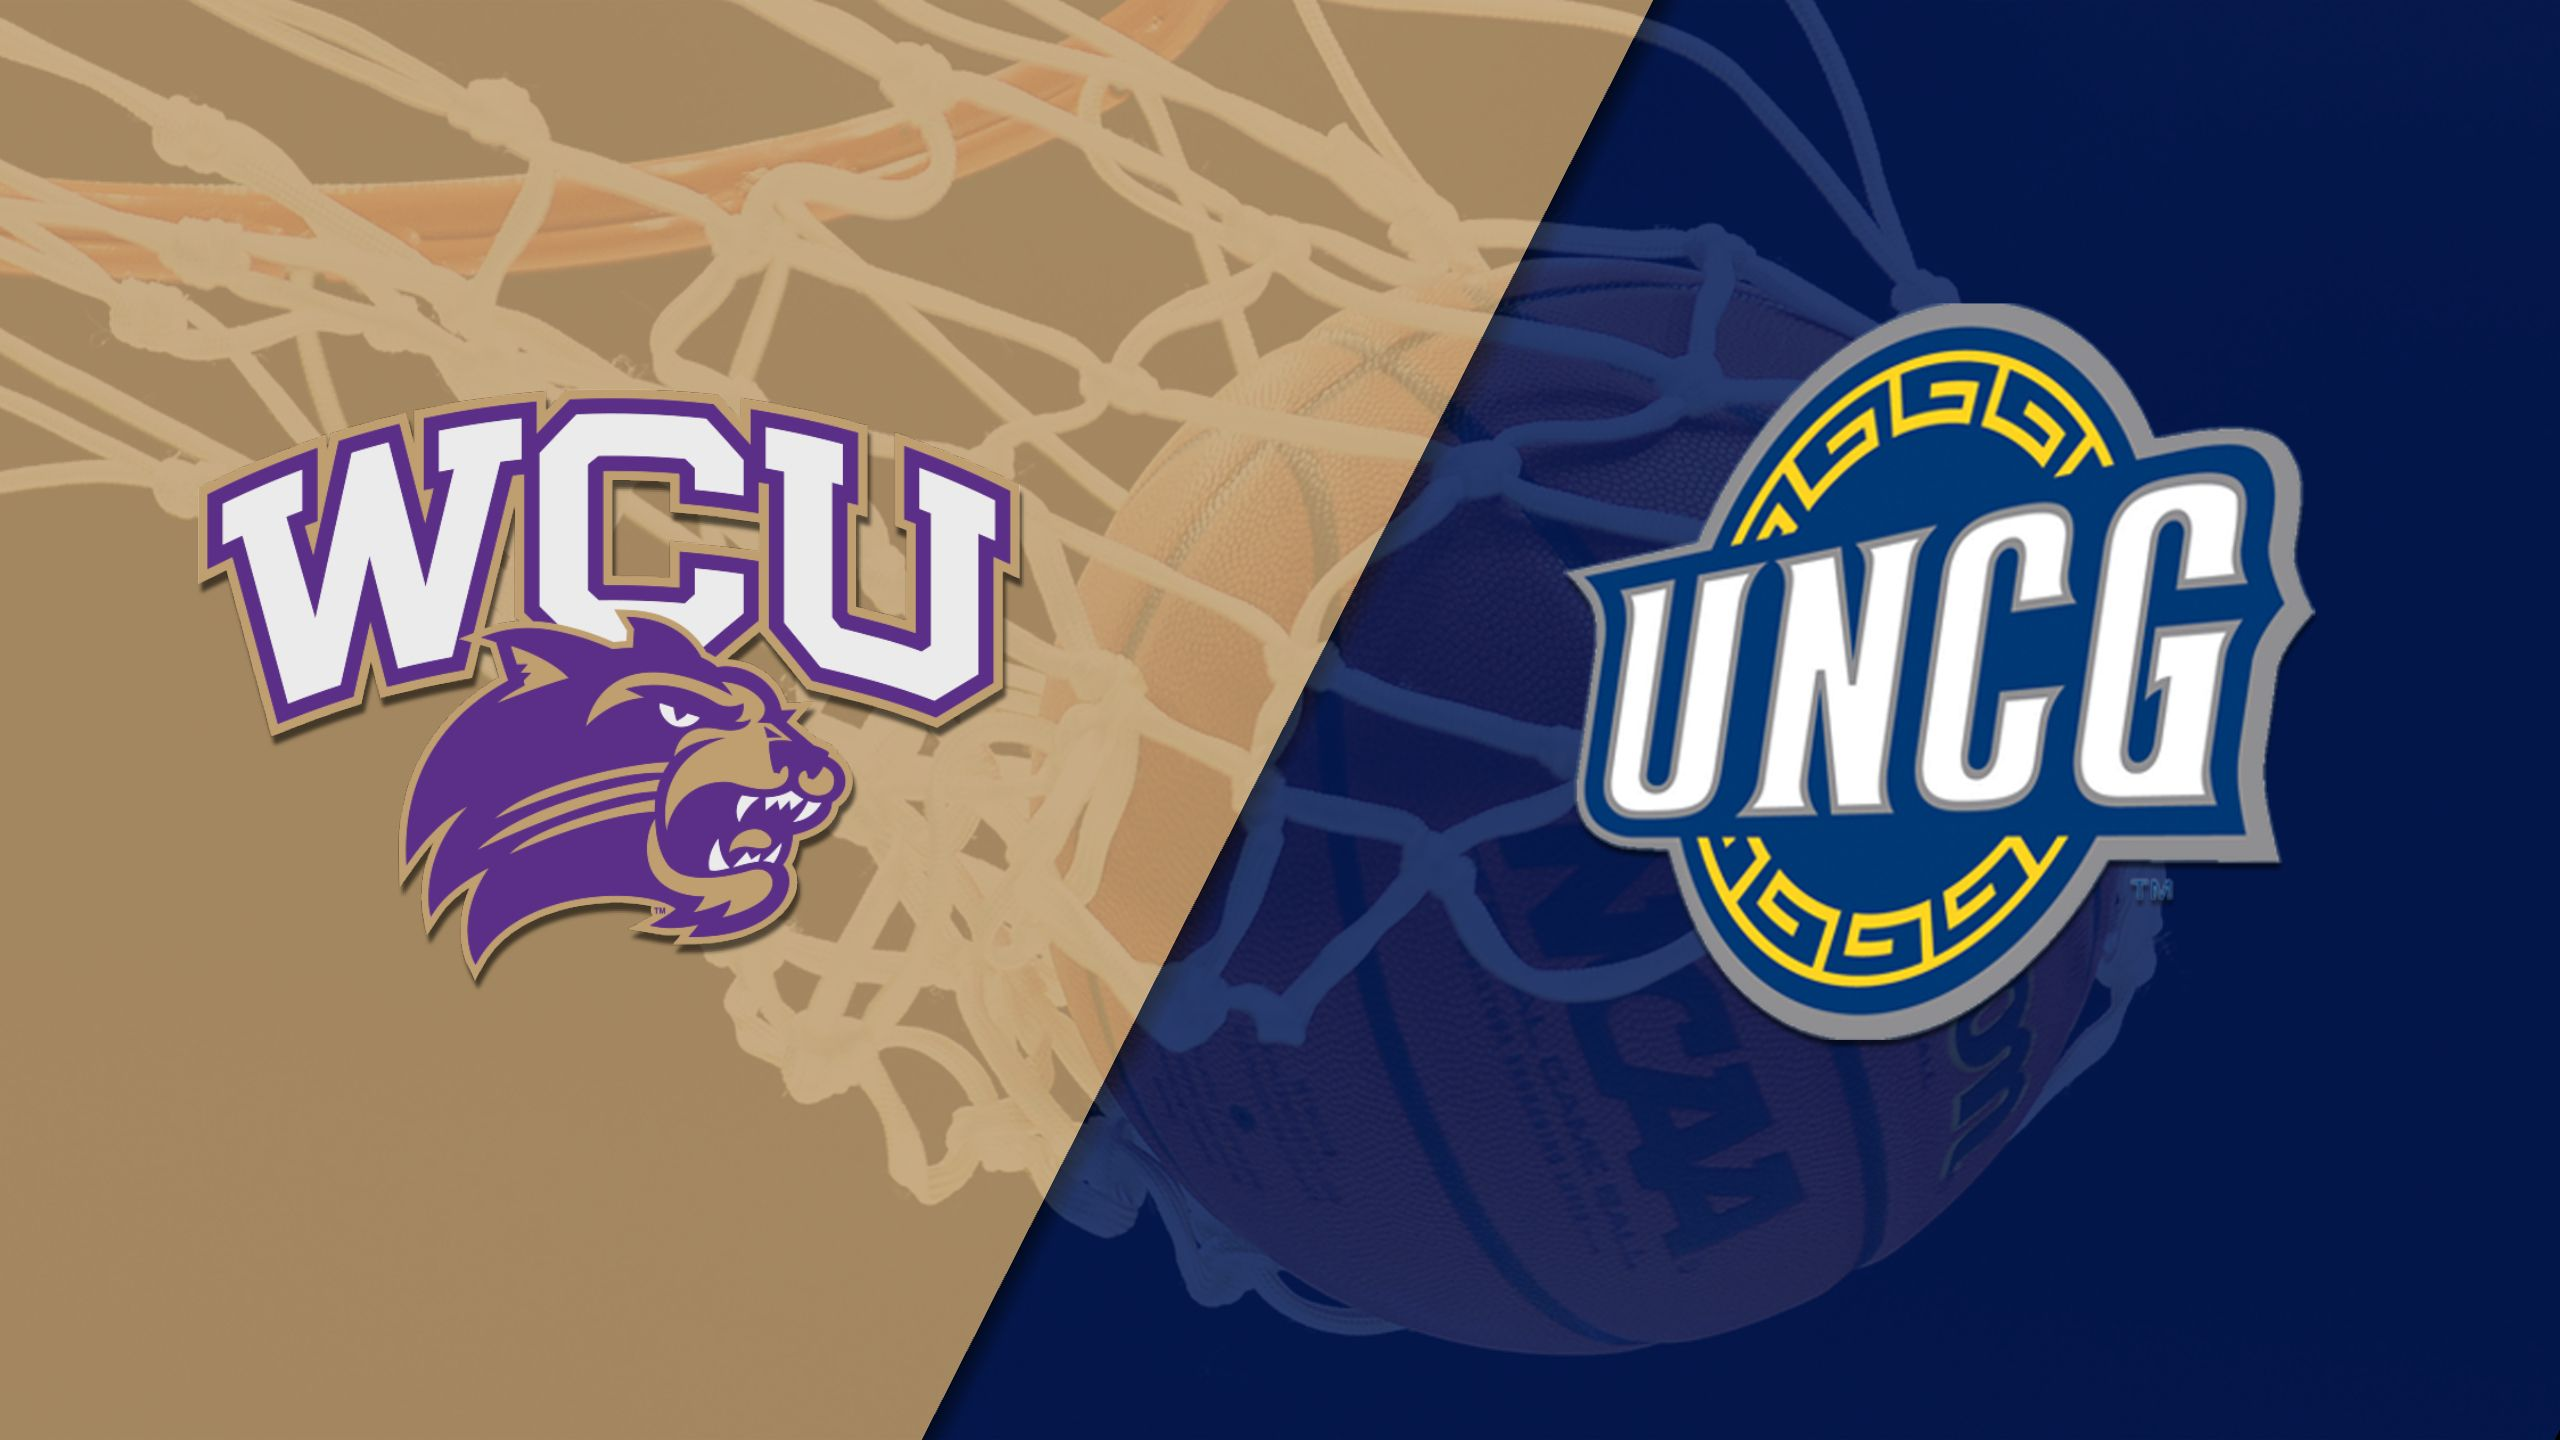 Western Carolina vs. UNC Greensboro (W Basketball)